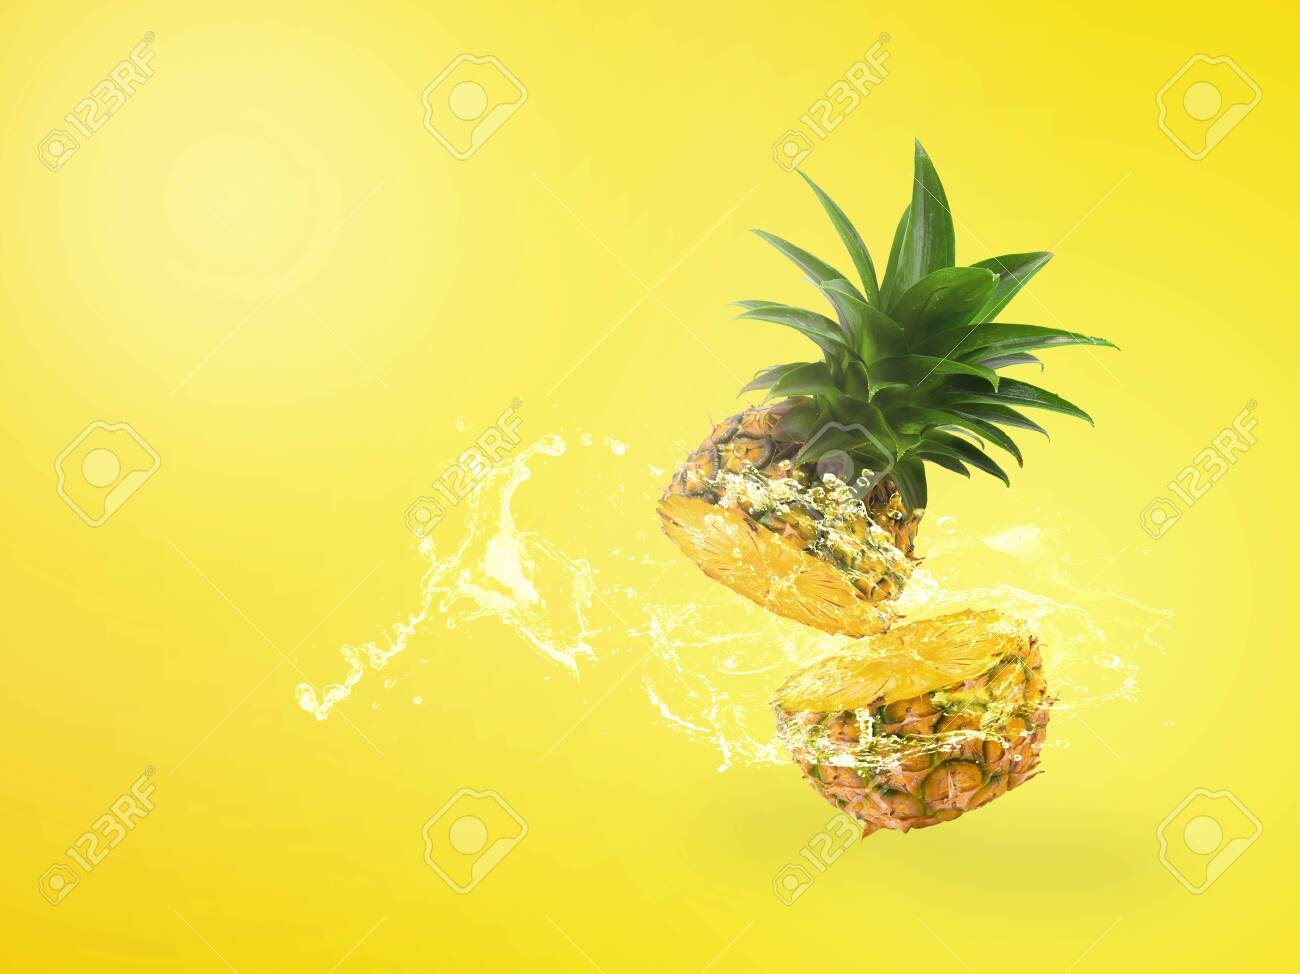 Water Splashing on Fresh Pineapple is tropical fruit isolated over yellow background. - 123203251